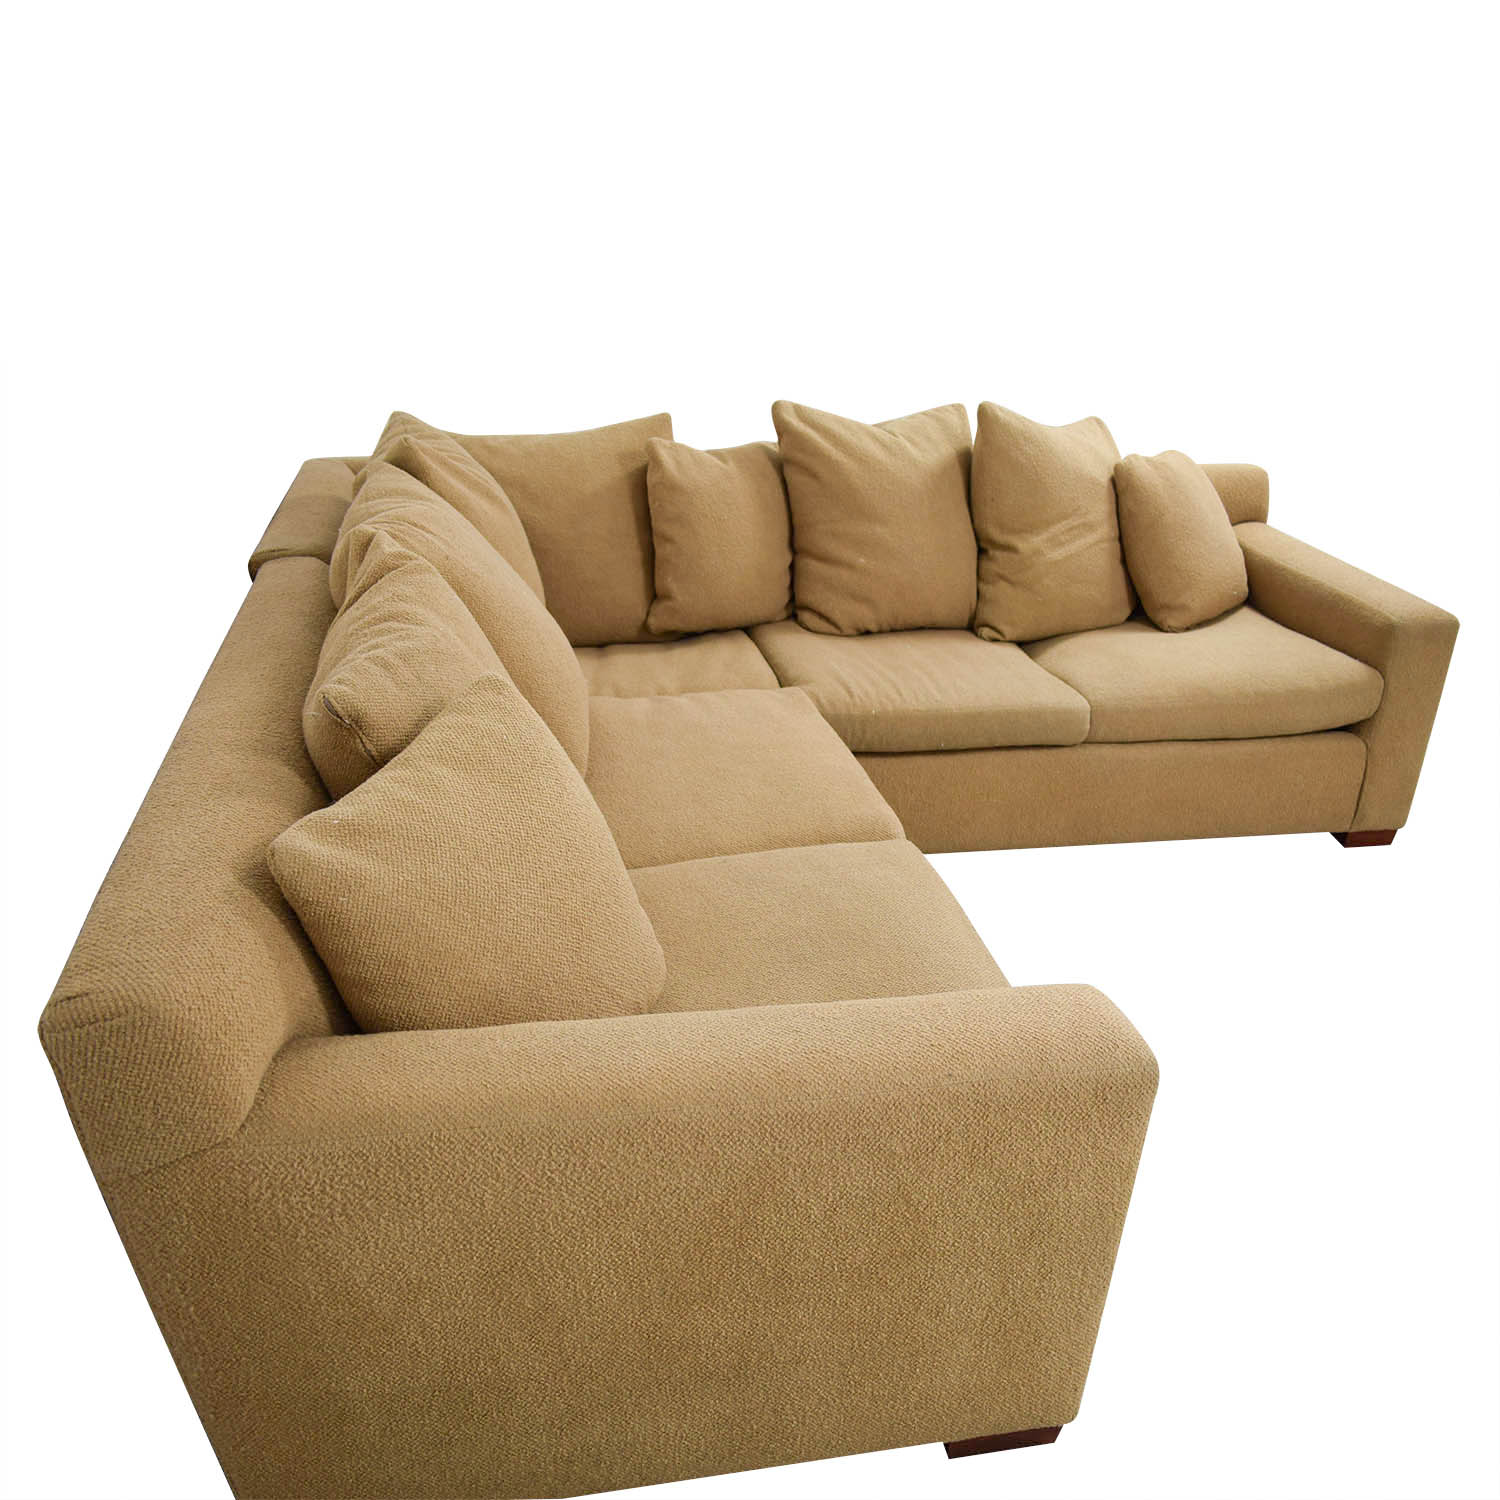 a sofa cushion tan u affordable plus then design inspirations shaped uncategorized soft there unique fabric carpet table box is and sectionals classic couch sectional rectangular brown